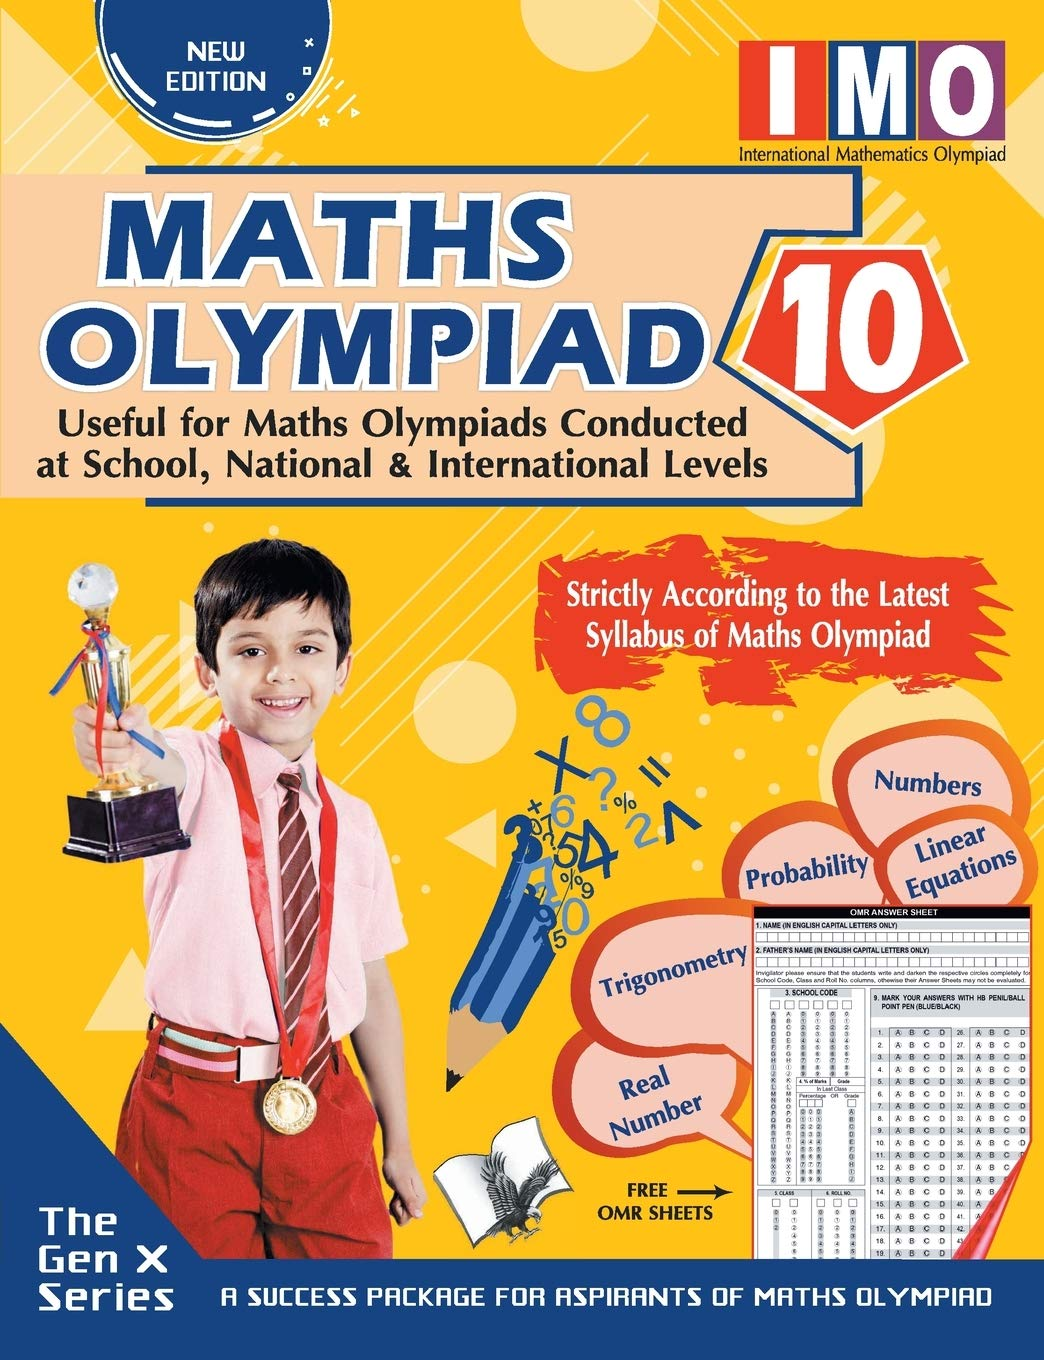 MATHS OLYMPIAD 10 (USEFUL FOR MATHS OLYMPIADS CONDUCTED AT SCHOOL, NATIONAL & INTERNATIONAL LEVELS)